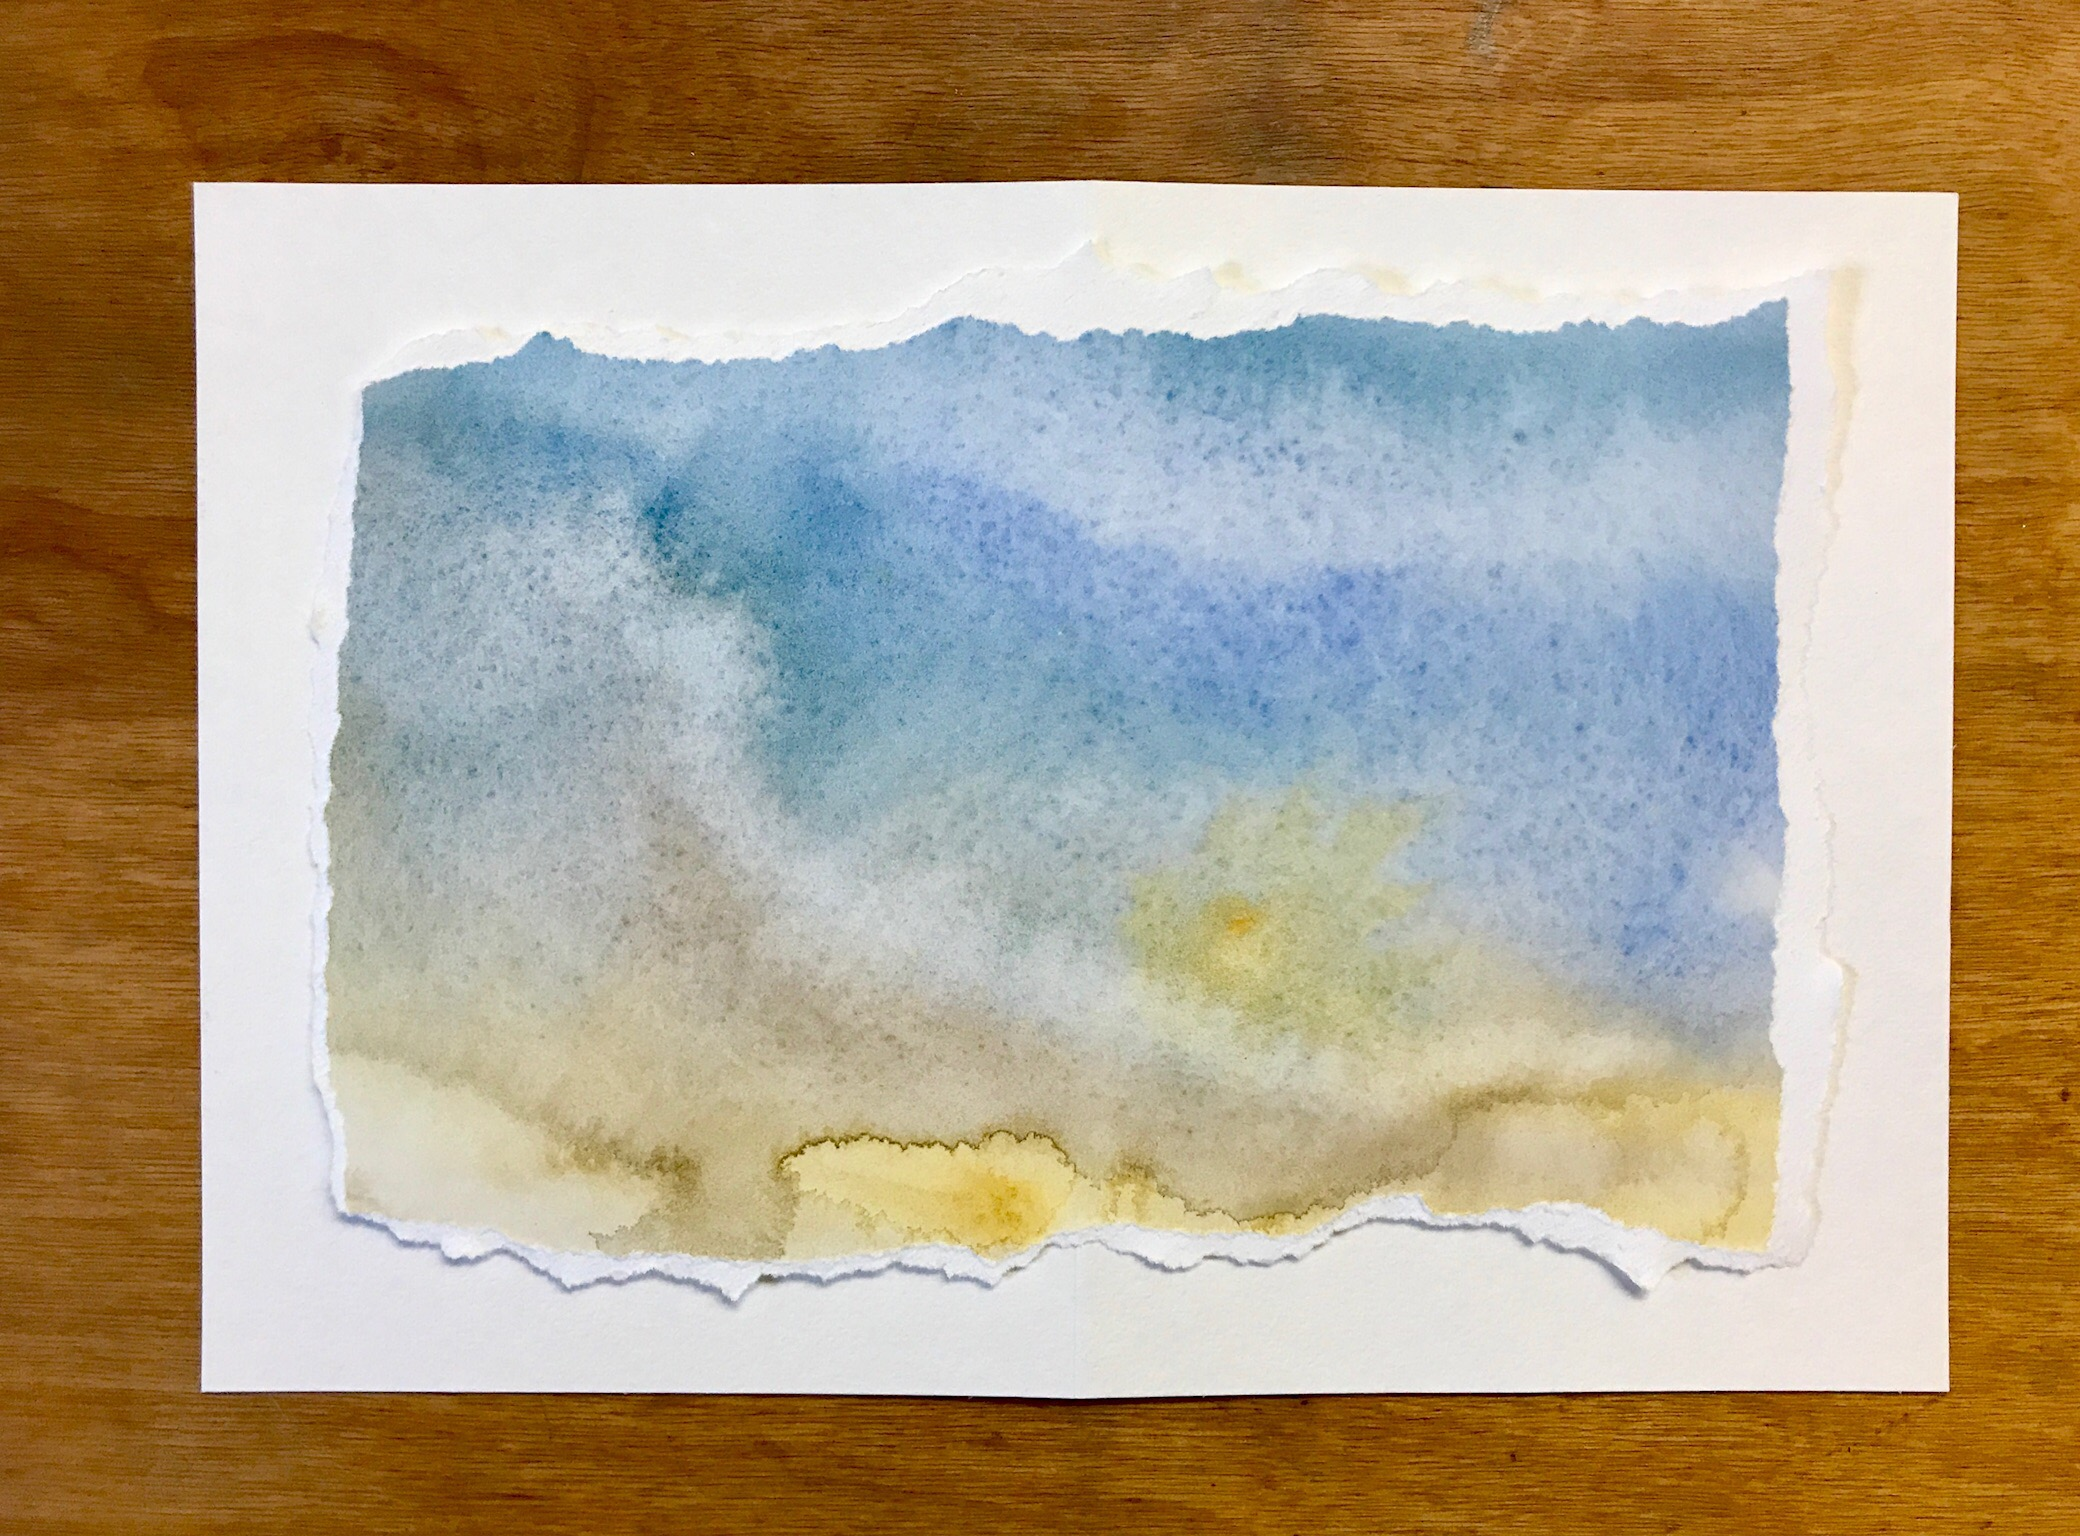 Blue and yellow watercolor